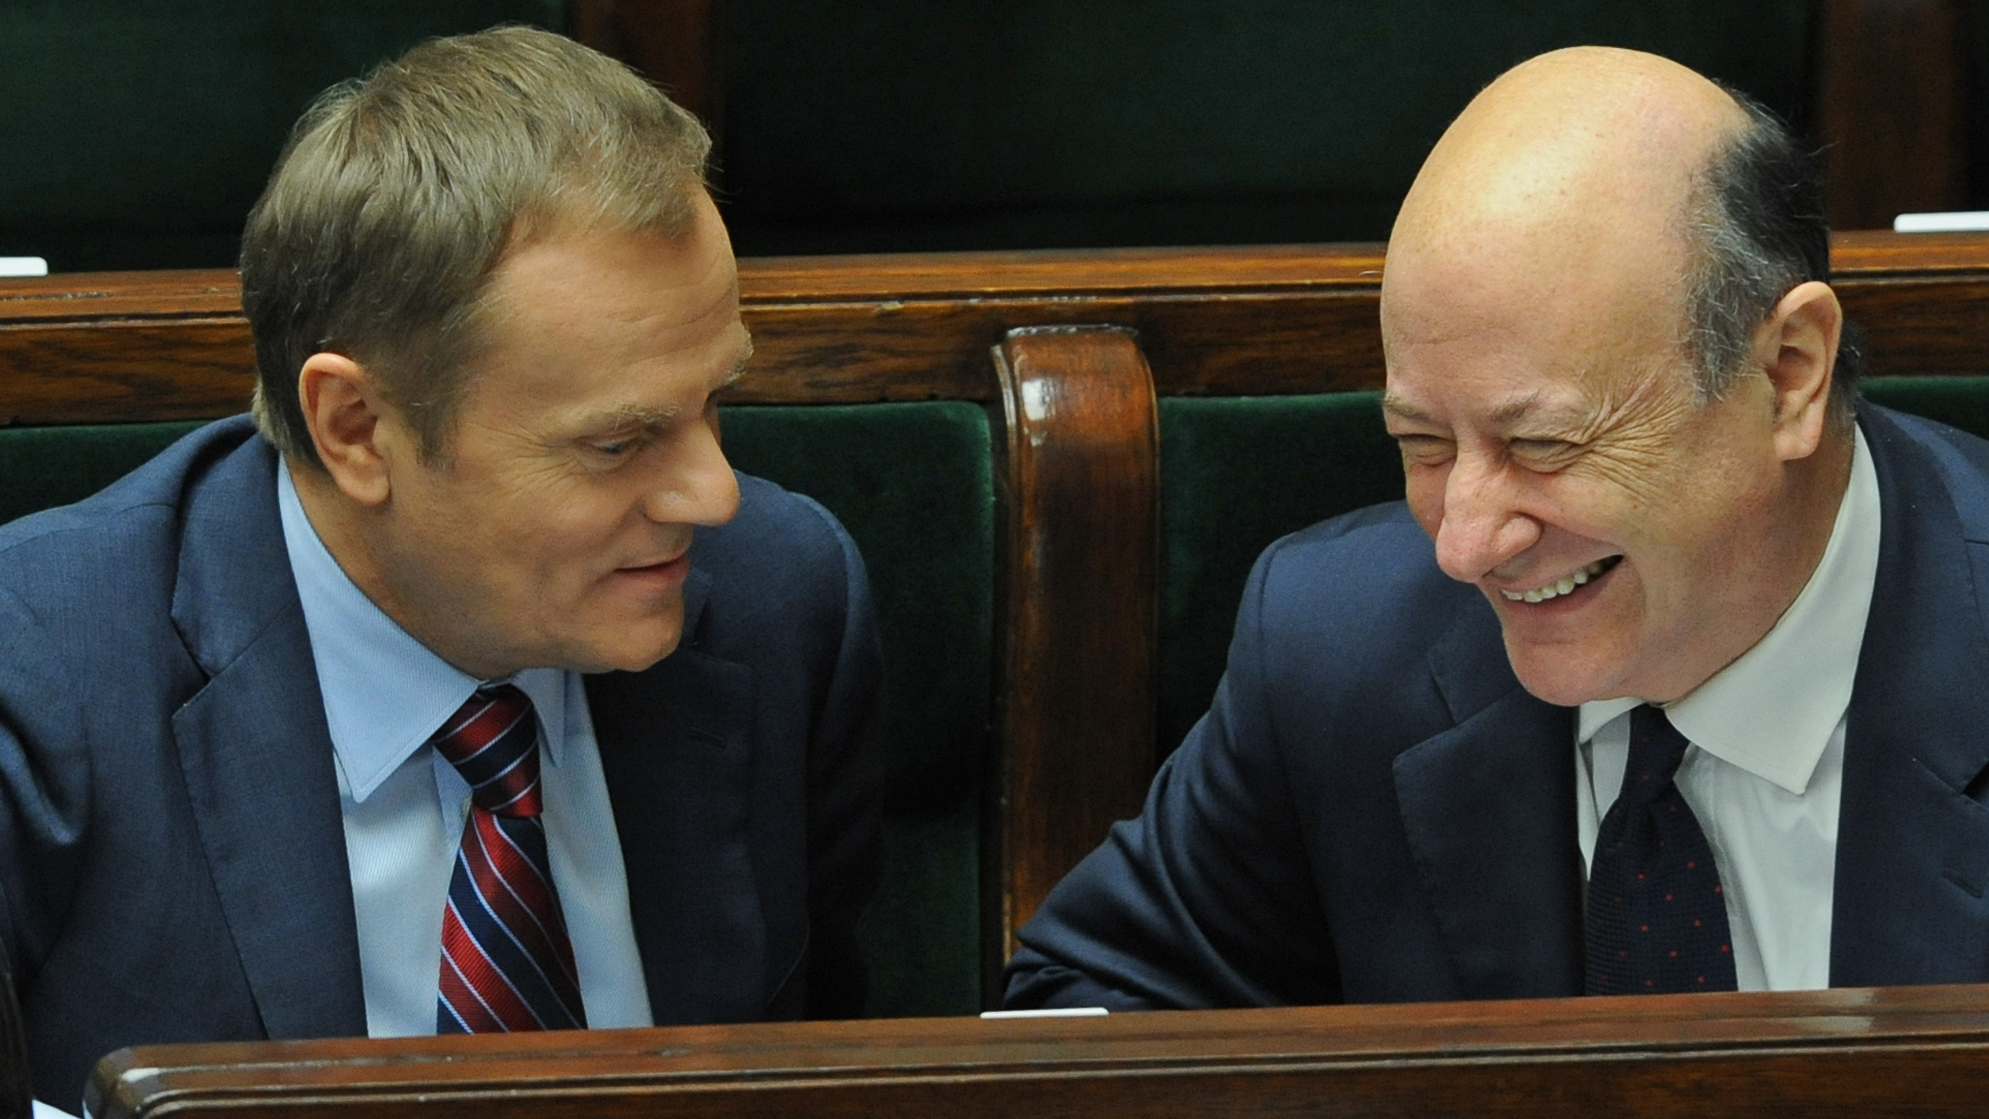 Poland's Prime Minister and Financial Minister